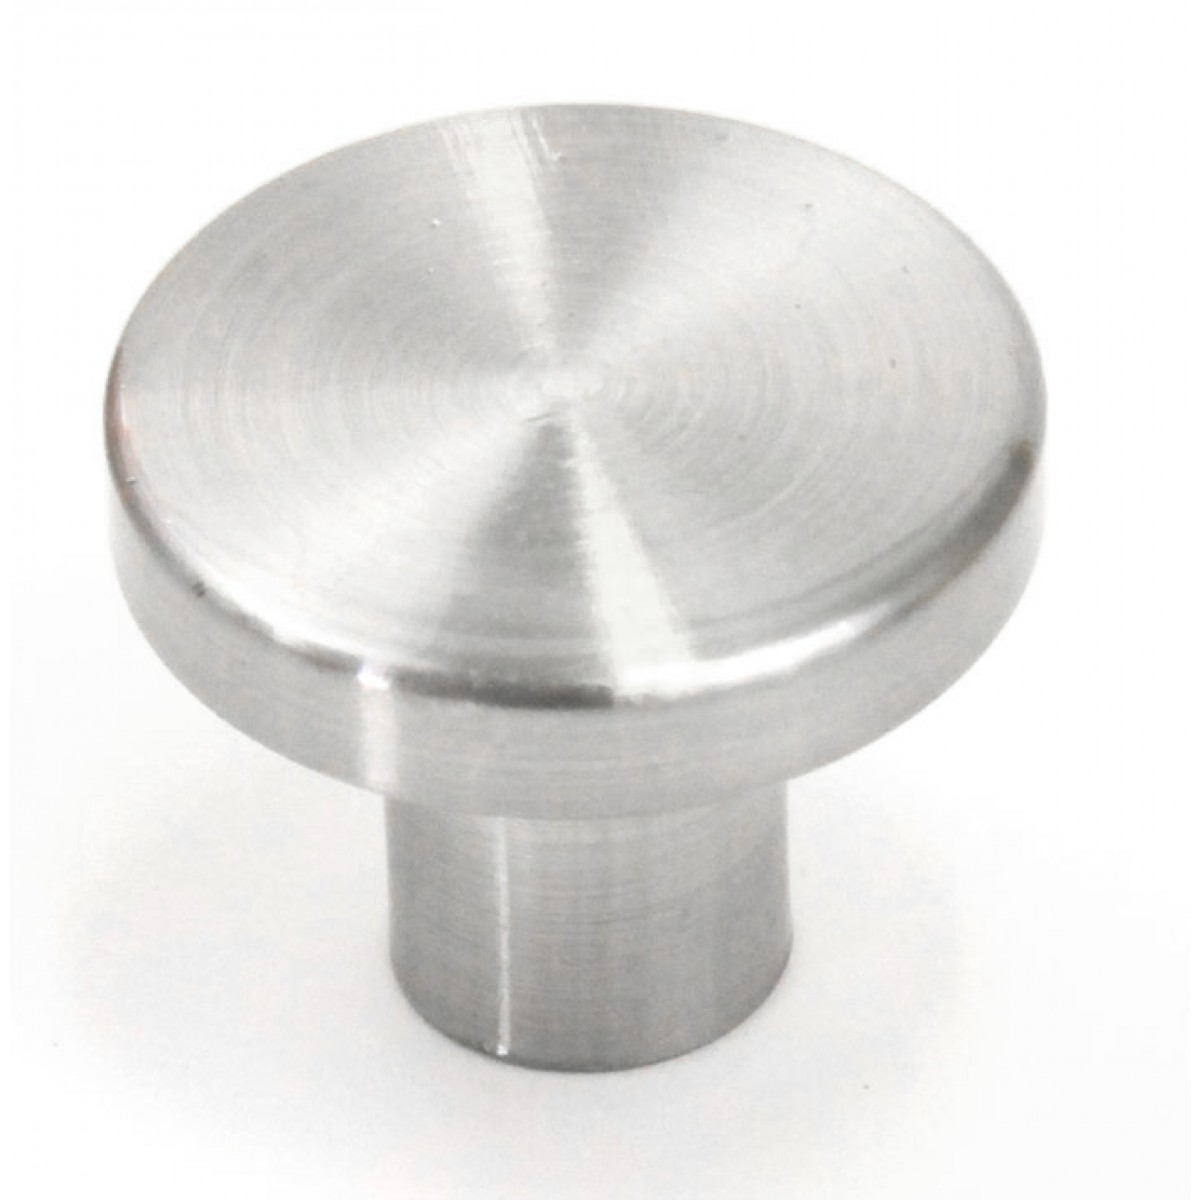 Ale 1 Inch Cabinet Pull Knob Brushed Nickel Finish